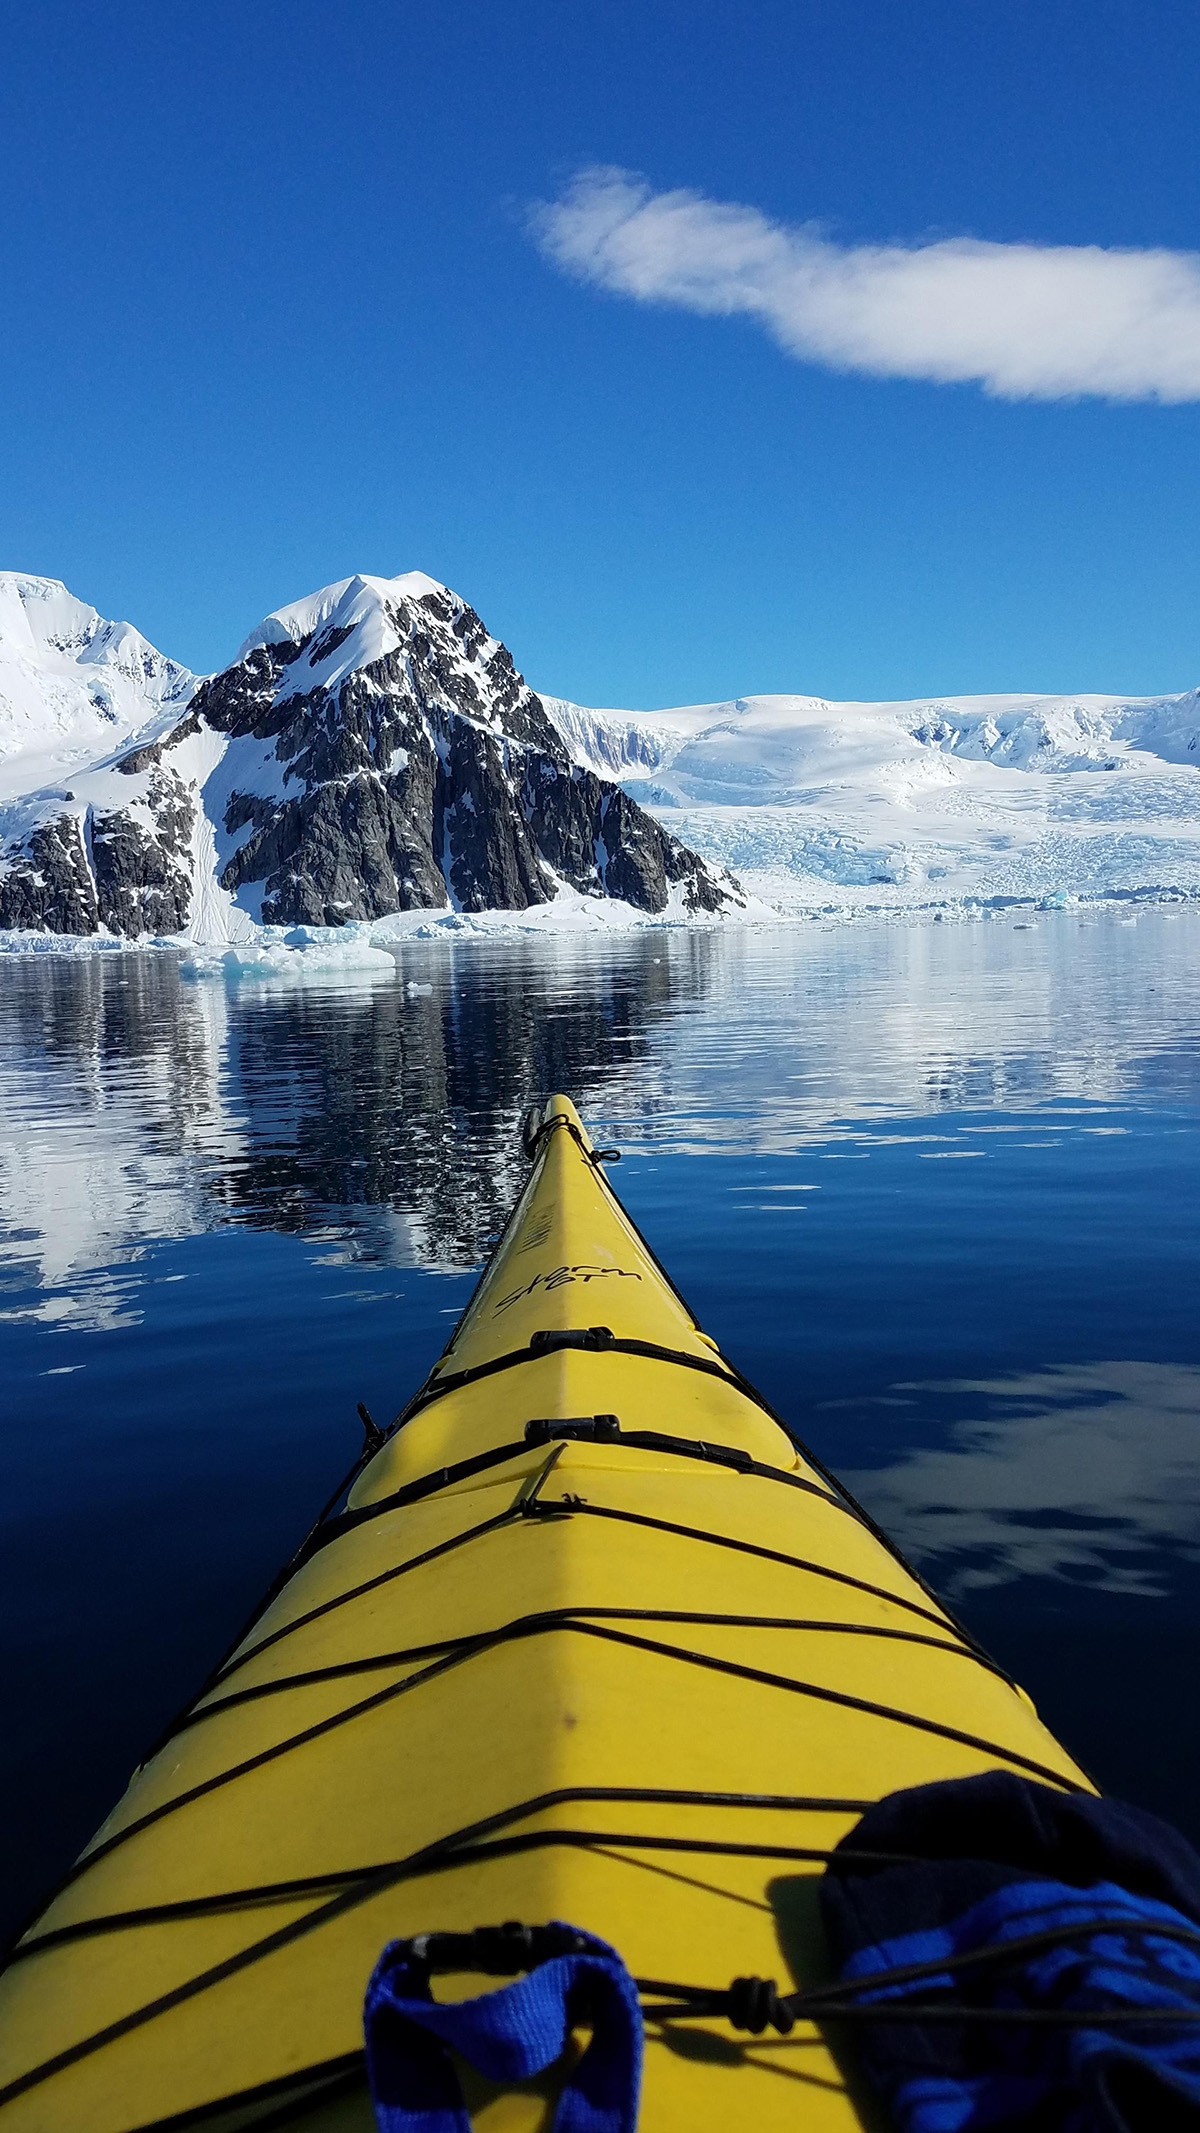 A Quark passenger enjoys the view from their kayak on tranquil Antarctic waters.